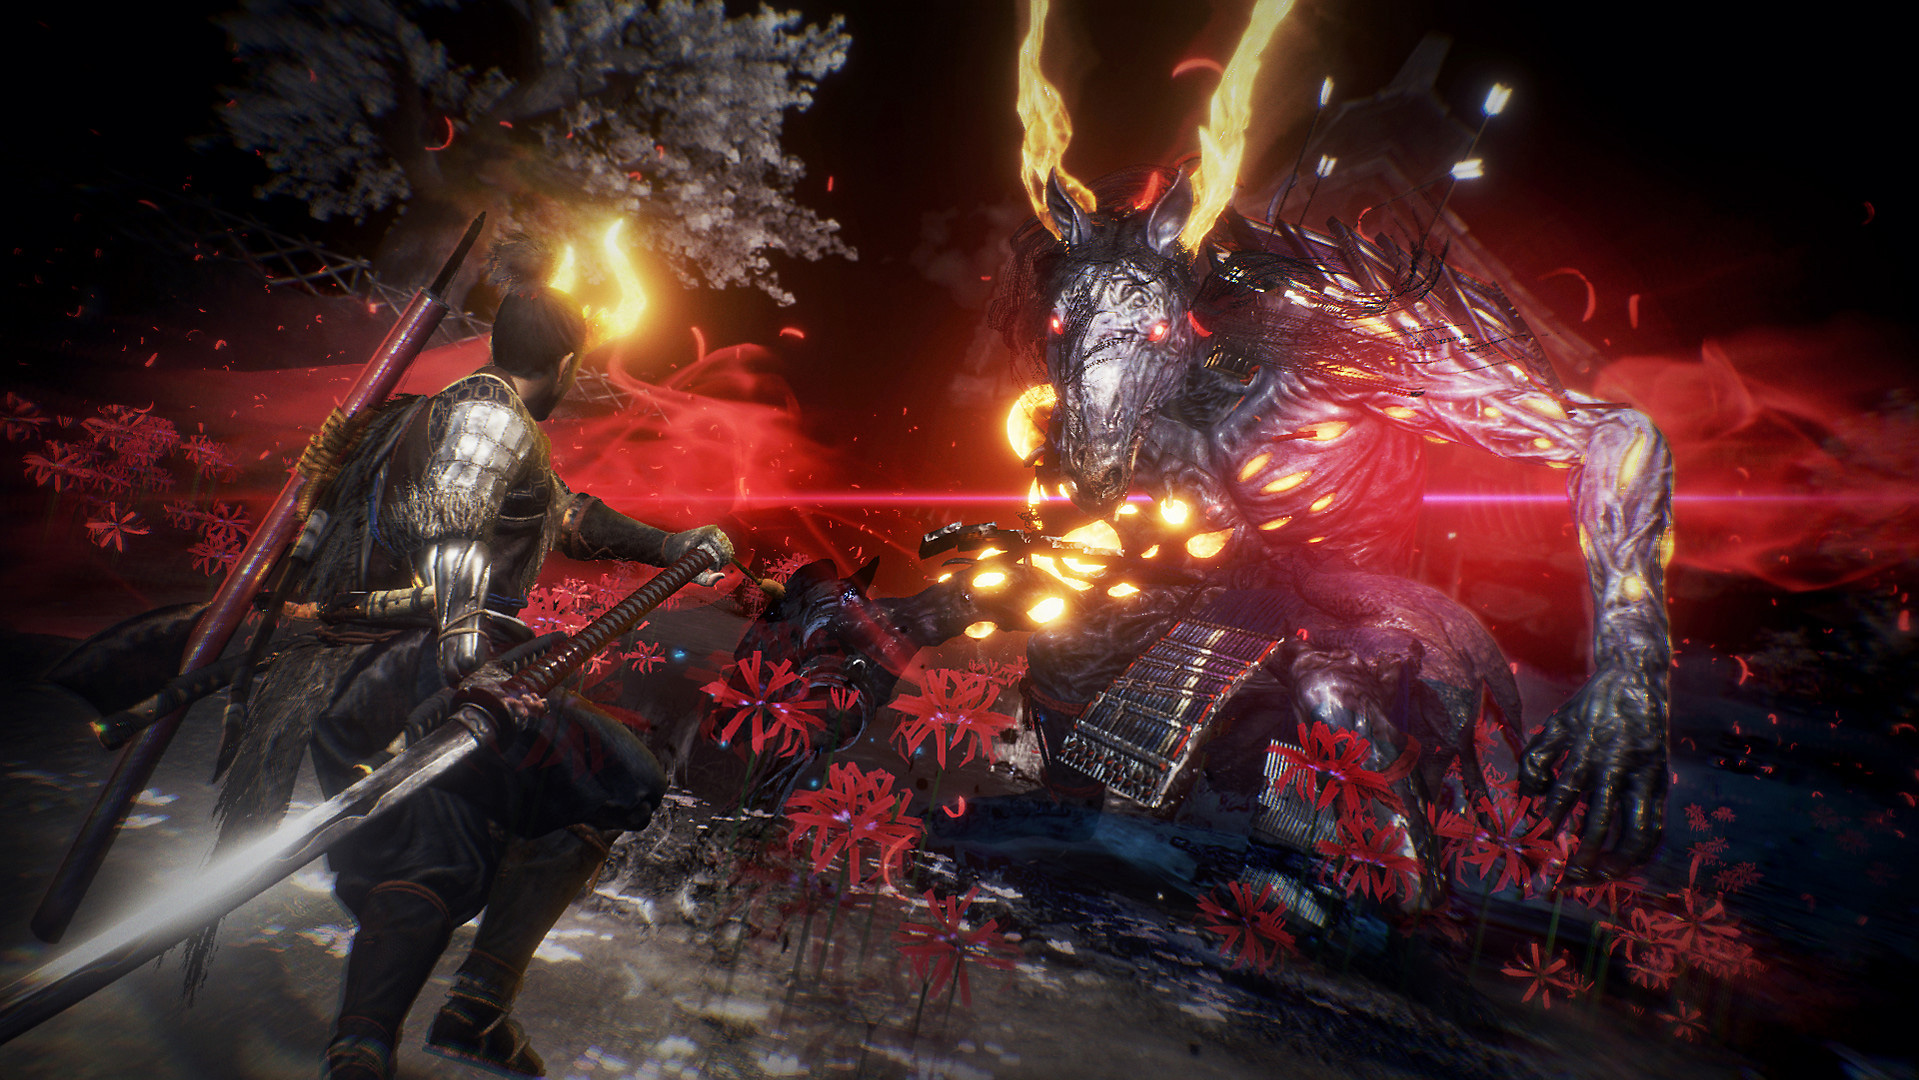 Farm this Nioh 2 mission if you want to hit the level cap screenshot